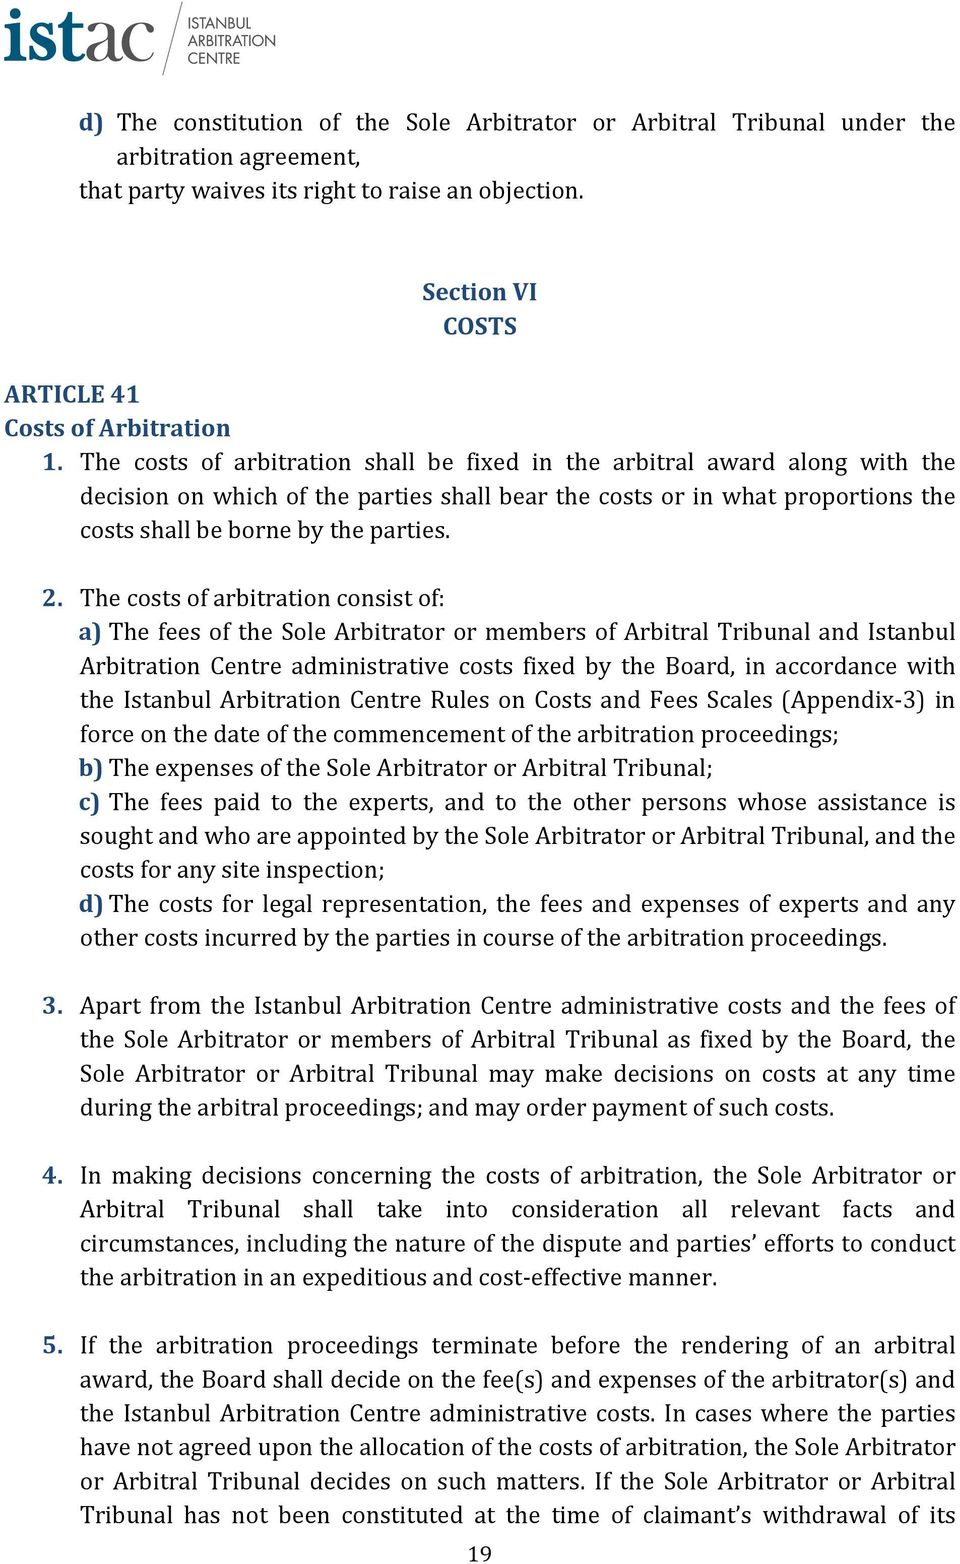 The costs of arbitration consist of: a) The fees of the Sole Arbitrator or members of Arbitral Tribunal and Istanbul Arbitration Centre administrative costs fixed by the Board, in accordance with the